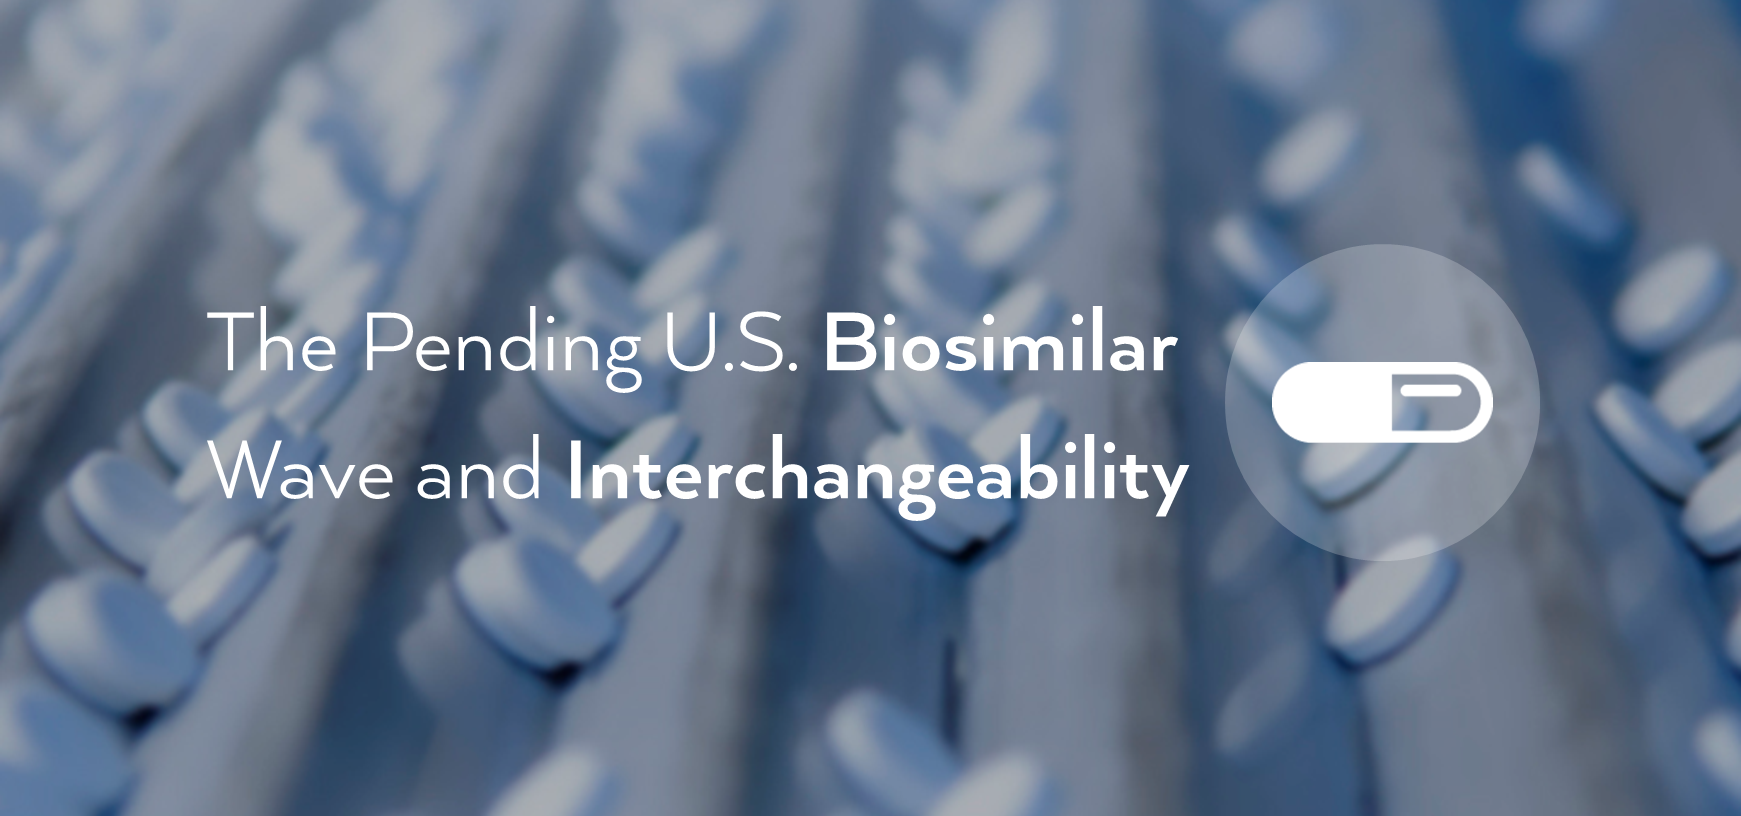 perspectives-biosimilar-interchangeability.png